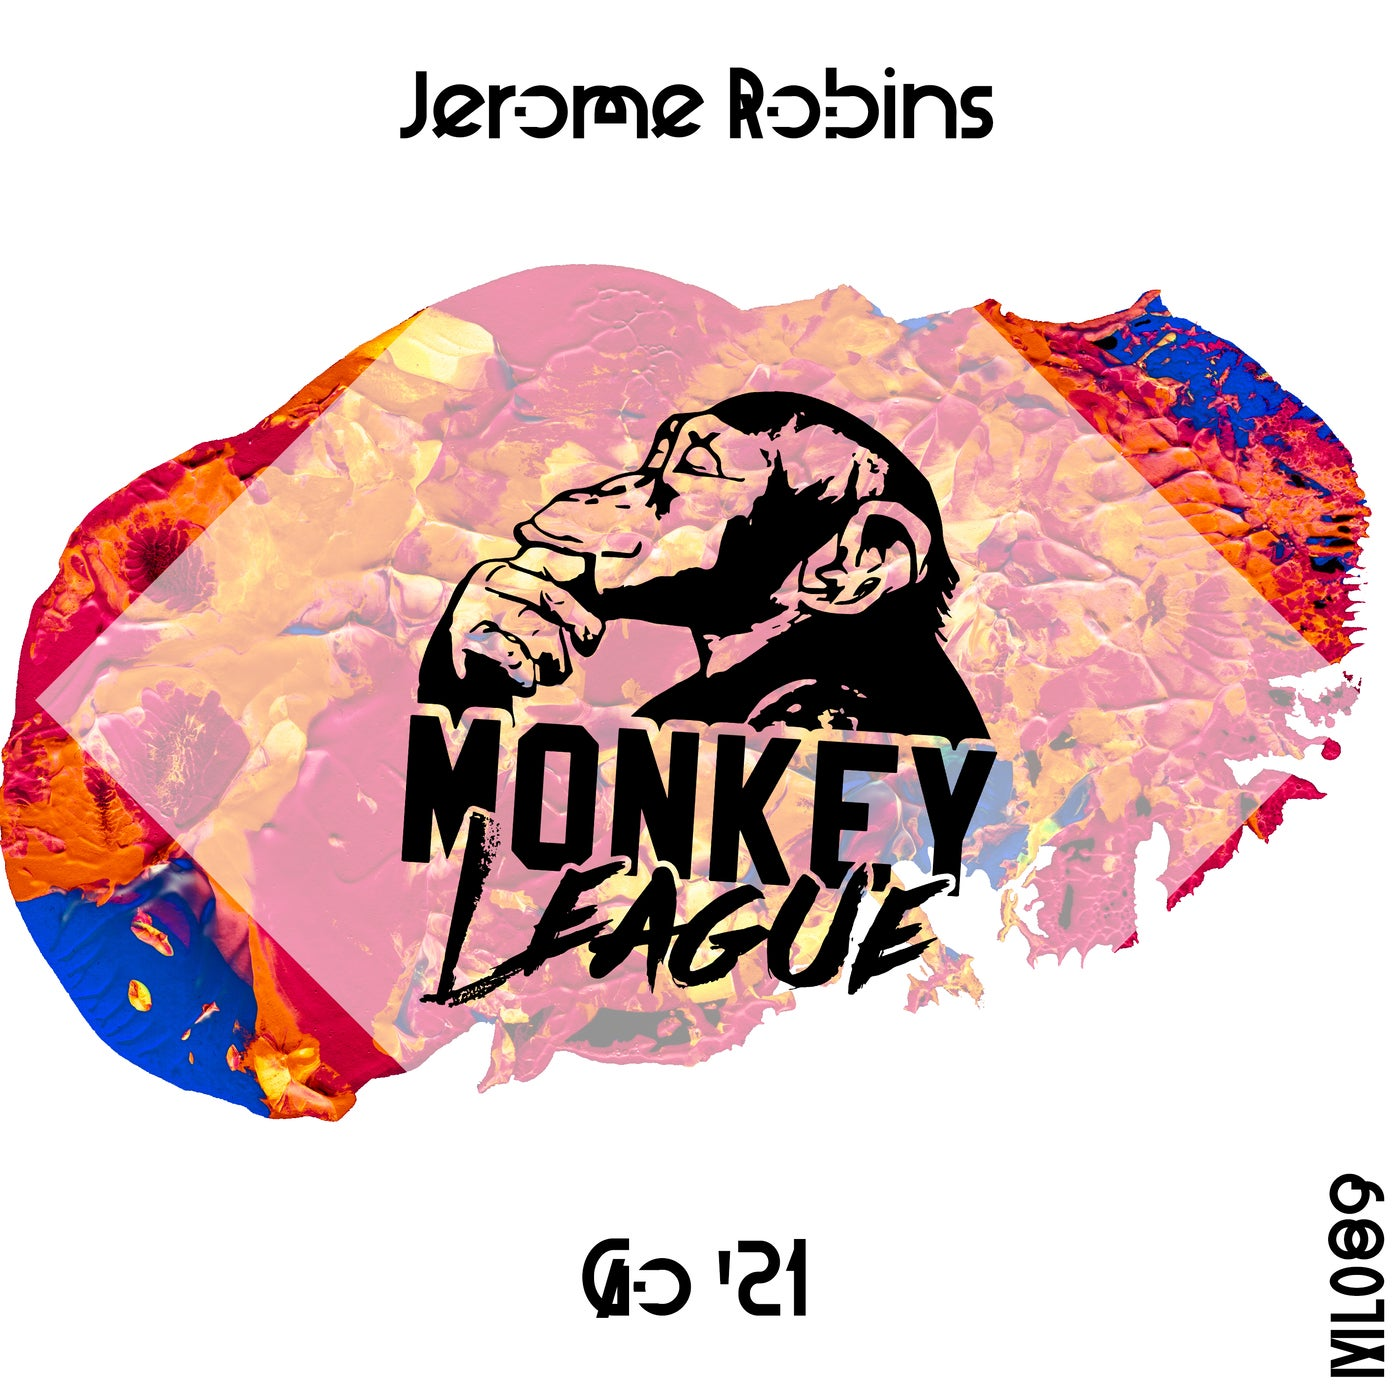 Go '21 (Jerome Robins Mix)